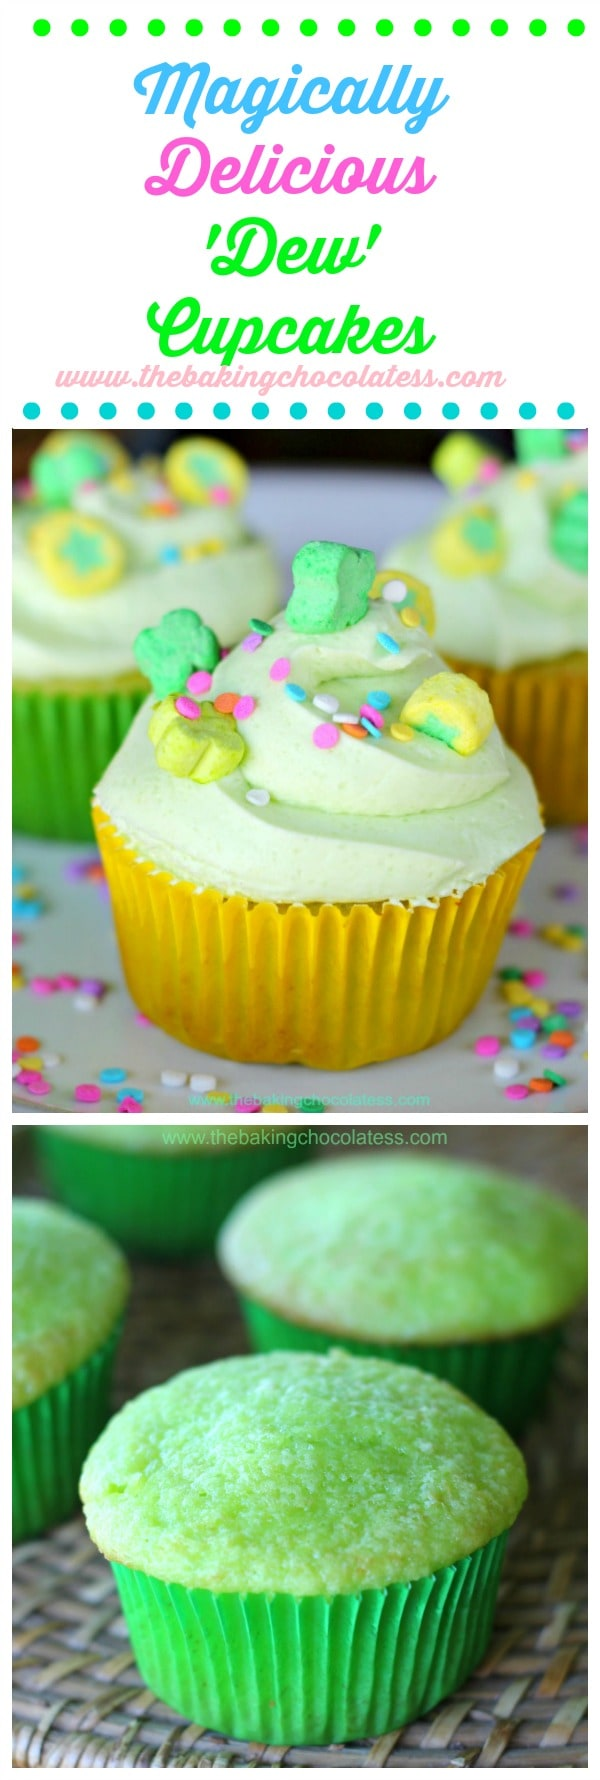 Magically Delicious \'Dew\' Cupcakes